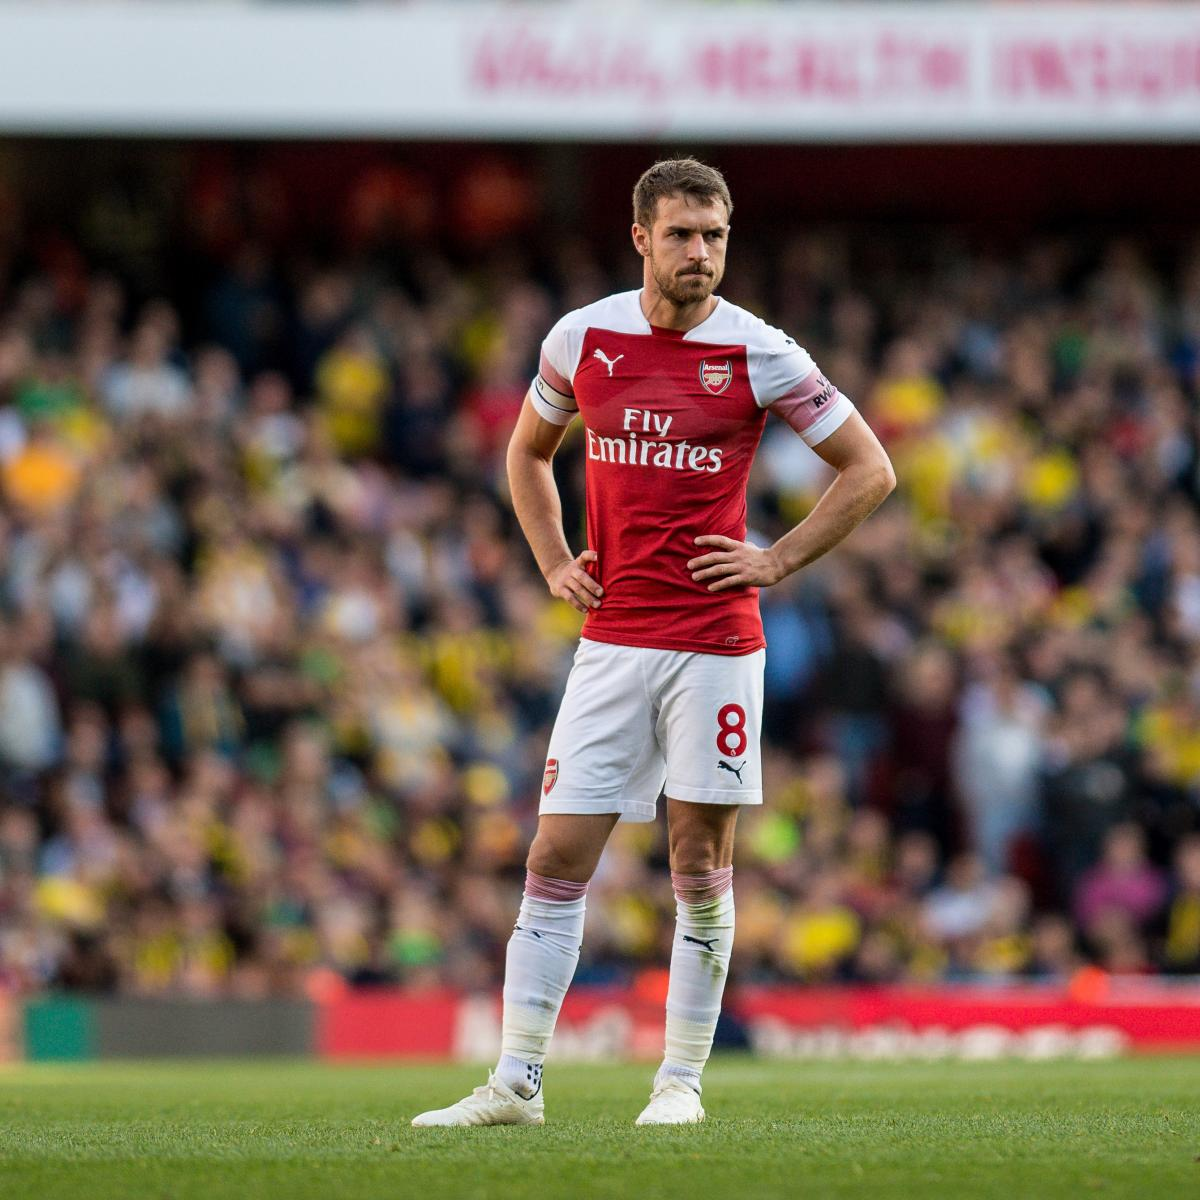 Liverpool Transfer News: Aaron Ramsey Eyed in Latest Rumours After Failed Bid